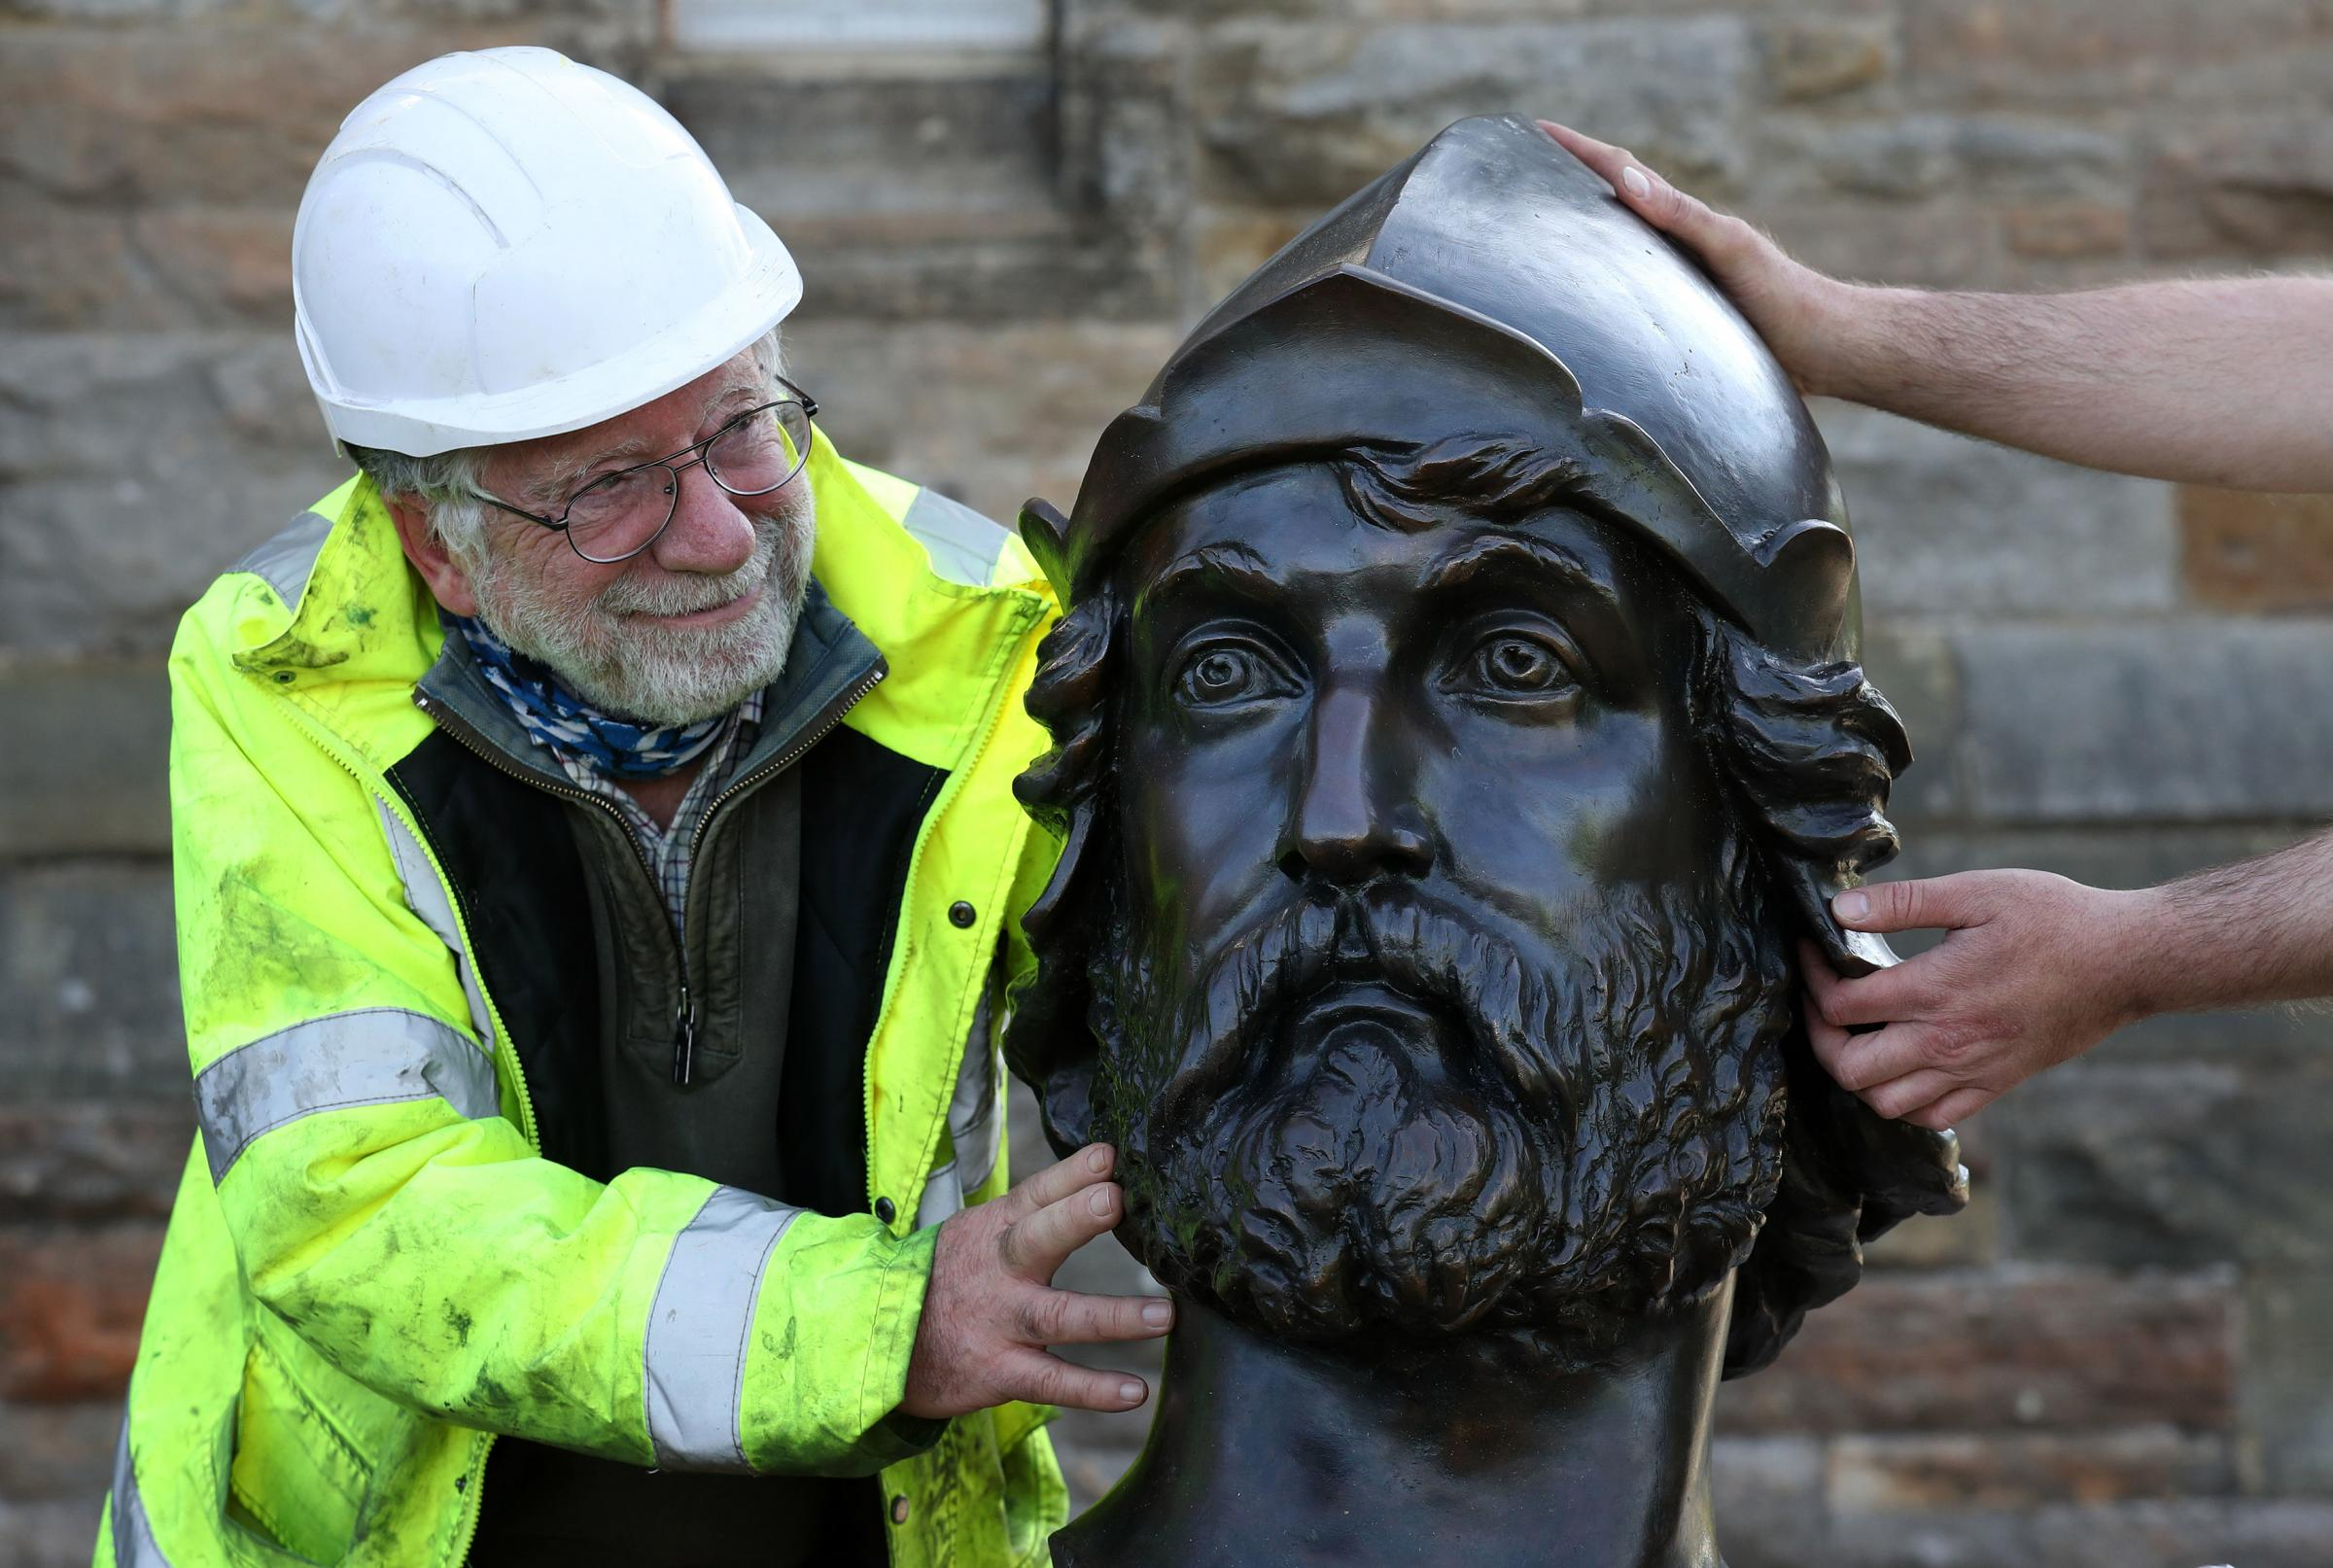 Conservator Restorer Jim Mitchell with part of the bronze statue of William Wallace which is being returned to the National Monument in Stirling after undergoing vital restoration work.